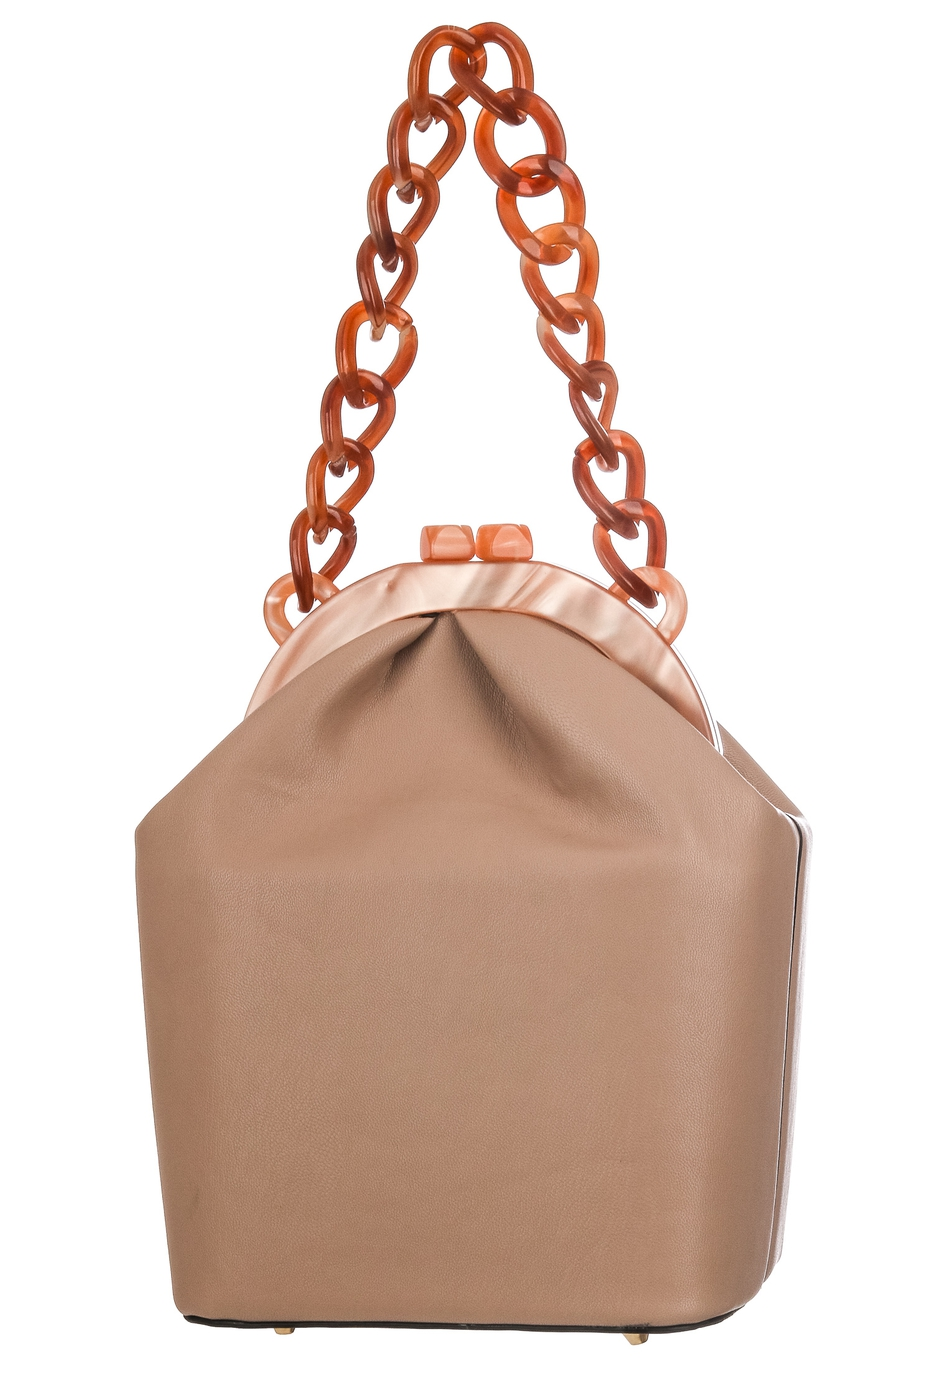 Acetate Chain Strap Faux Leather Bag - orangeshine.com